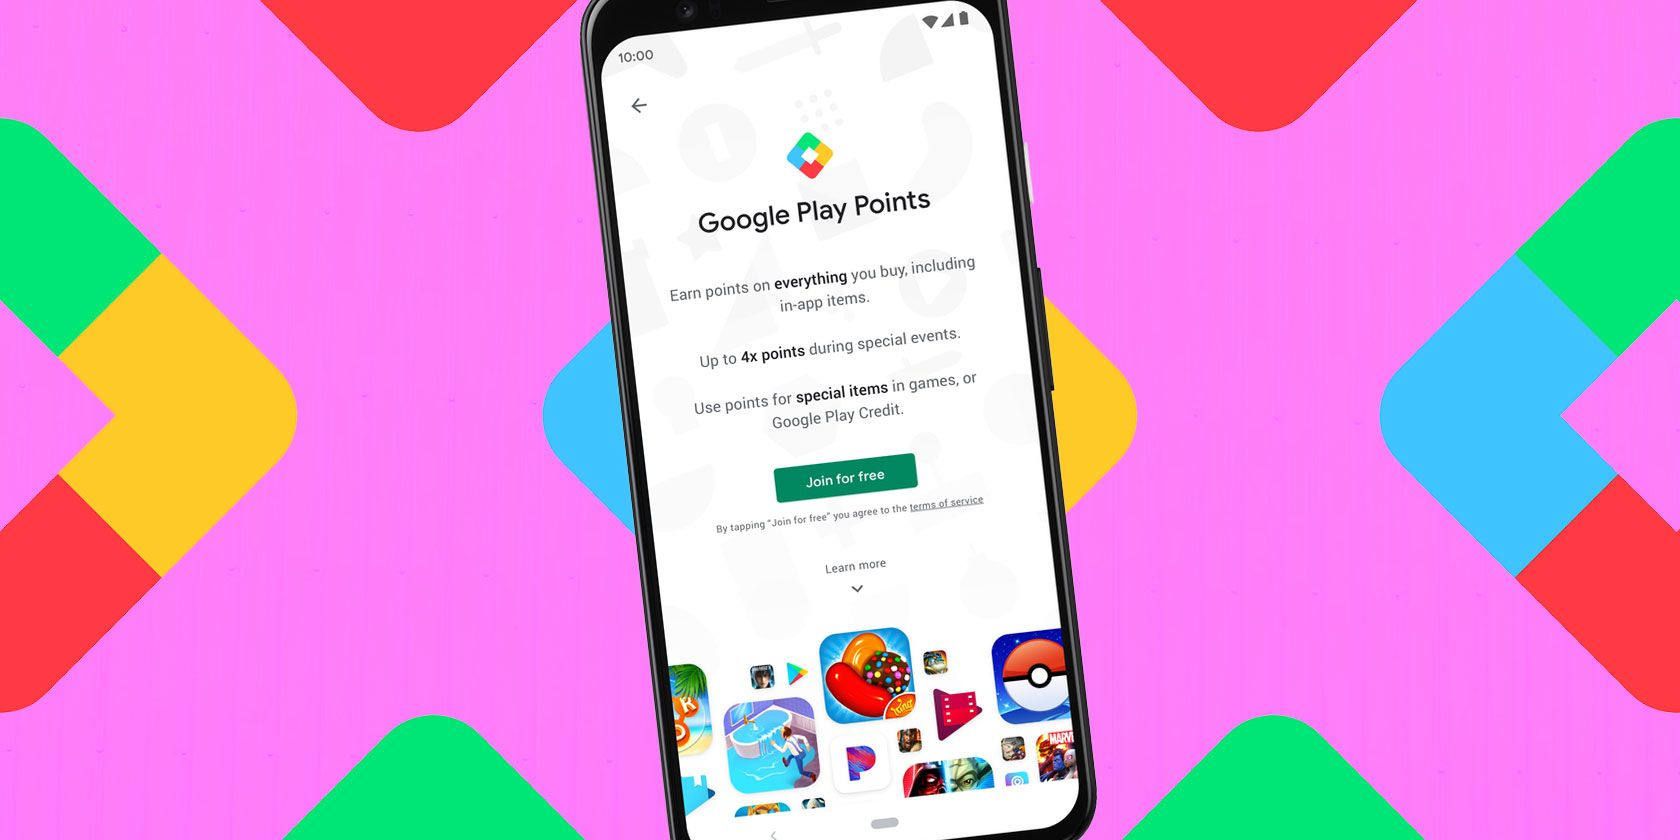 What Are Google Play Points and How Can You Use Them?